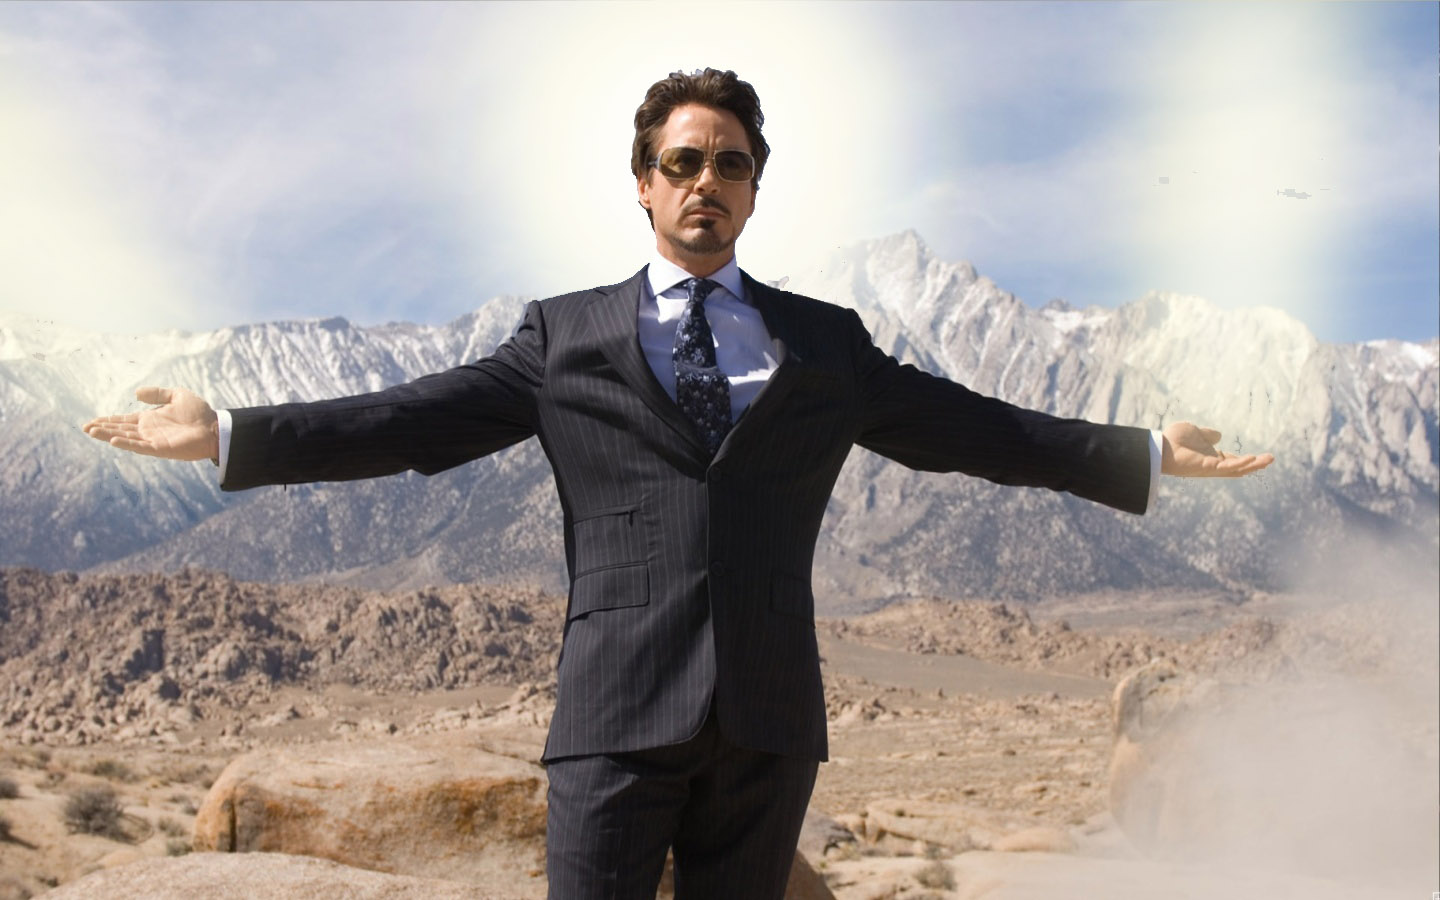 Being Iron Man IRL: How to (kinda) dress like Tony Stark ...